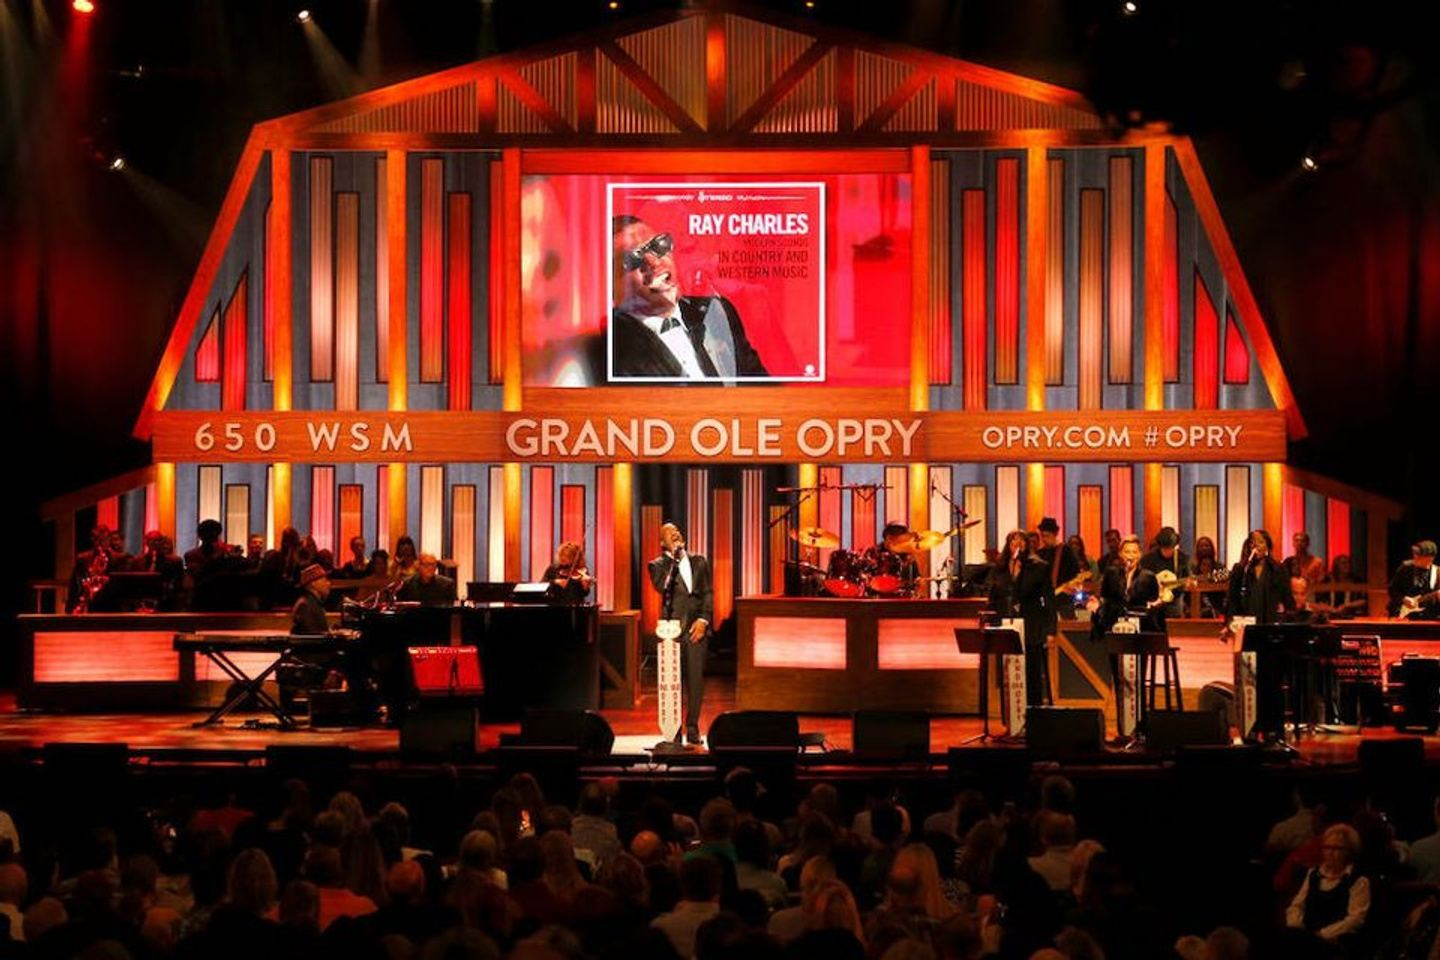 Gil Grand's Country Music Tour to Nashville